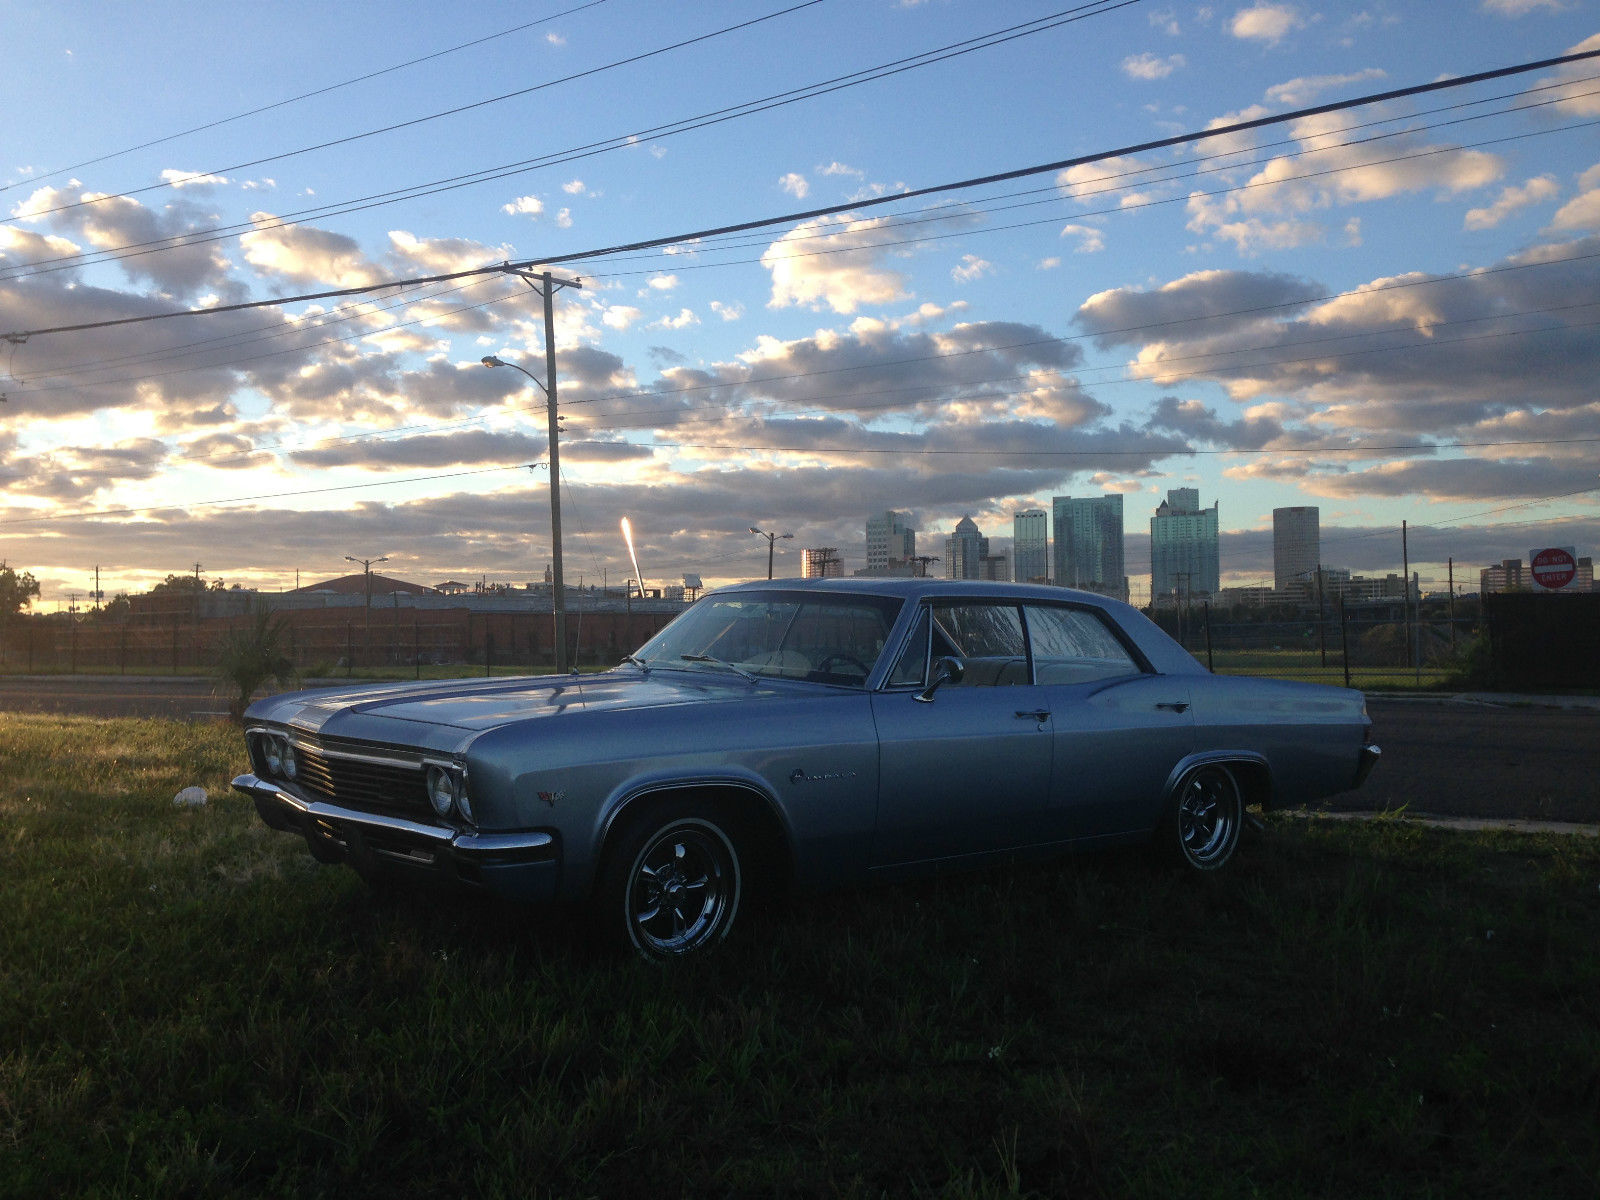 1966 Chevy Impala 4 Door Hardtop For Sale In Tampa Florida United 2 States